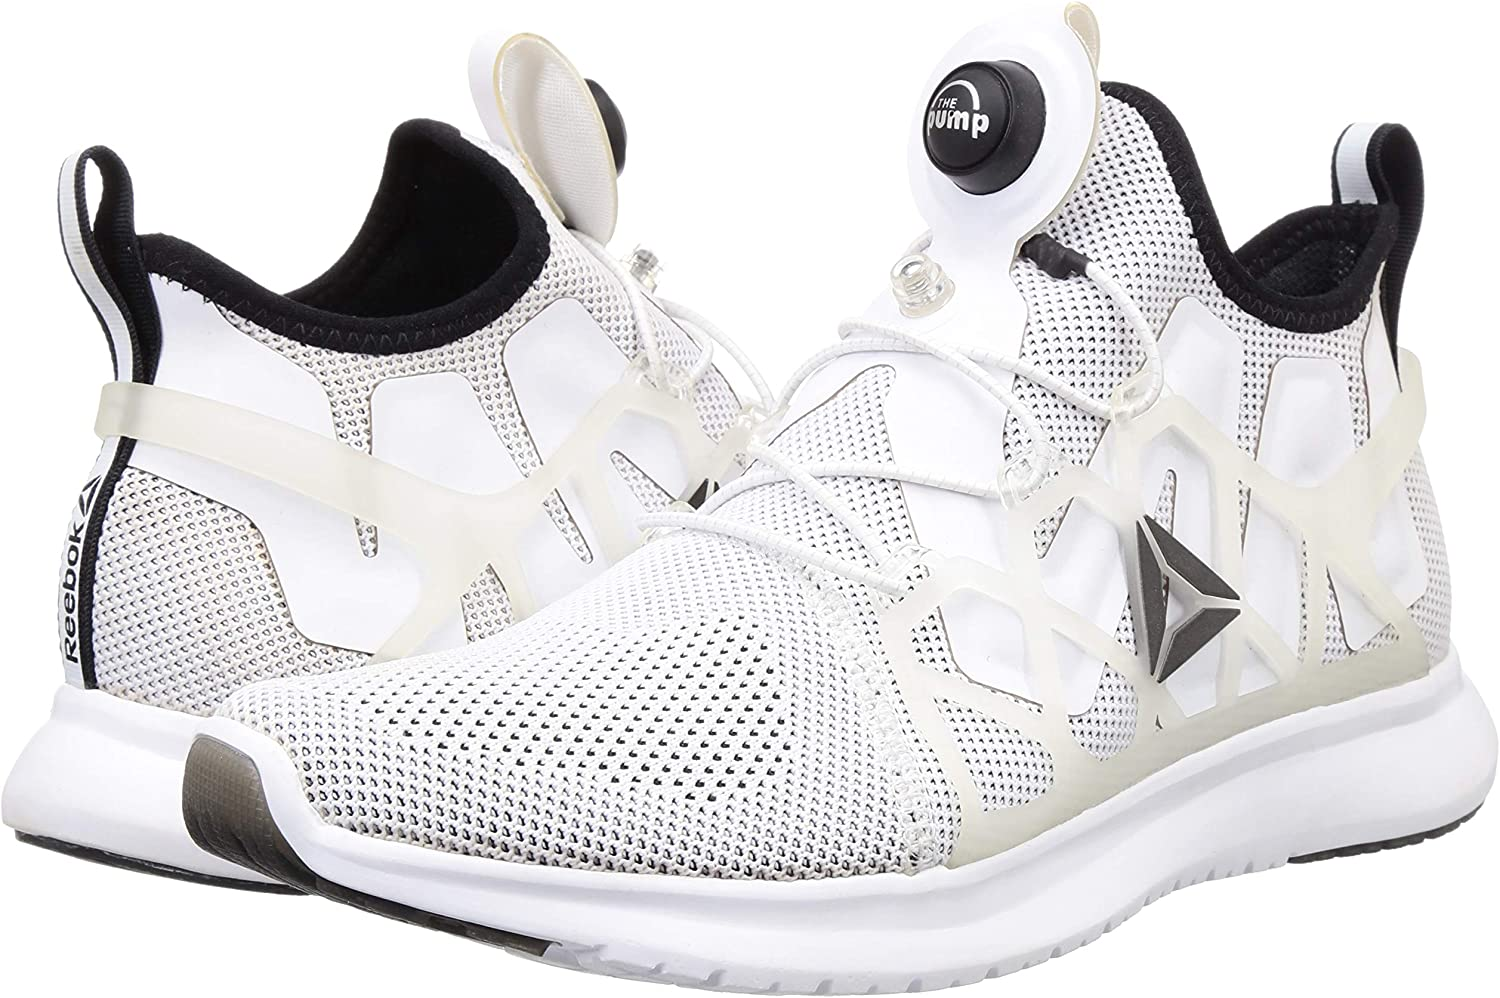 Reebok Pump Plus Cage, Zapatillas de Running para Hombre, Blanco (White/Black), 44.5 EU: Amazon.es: Zapatos y complementos